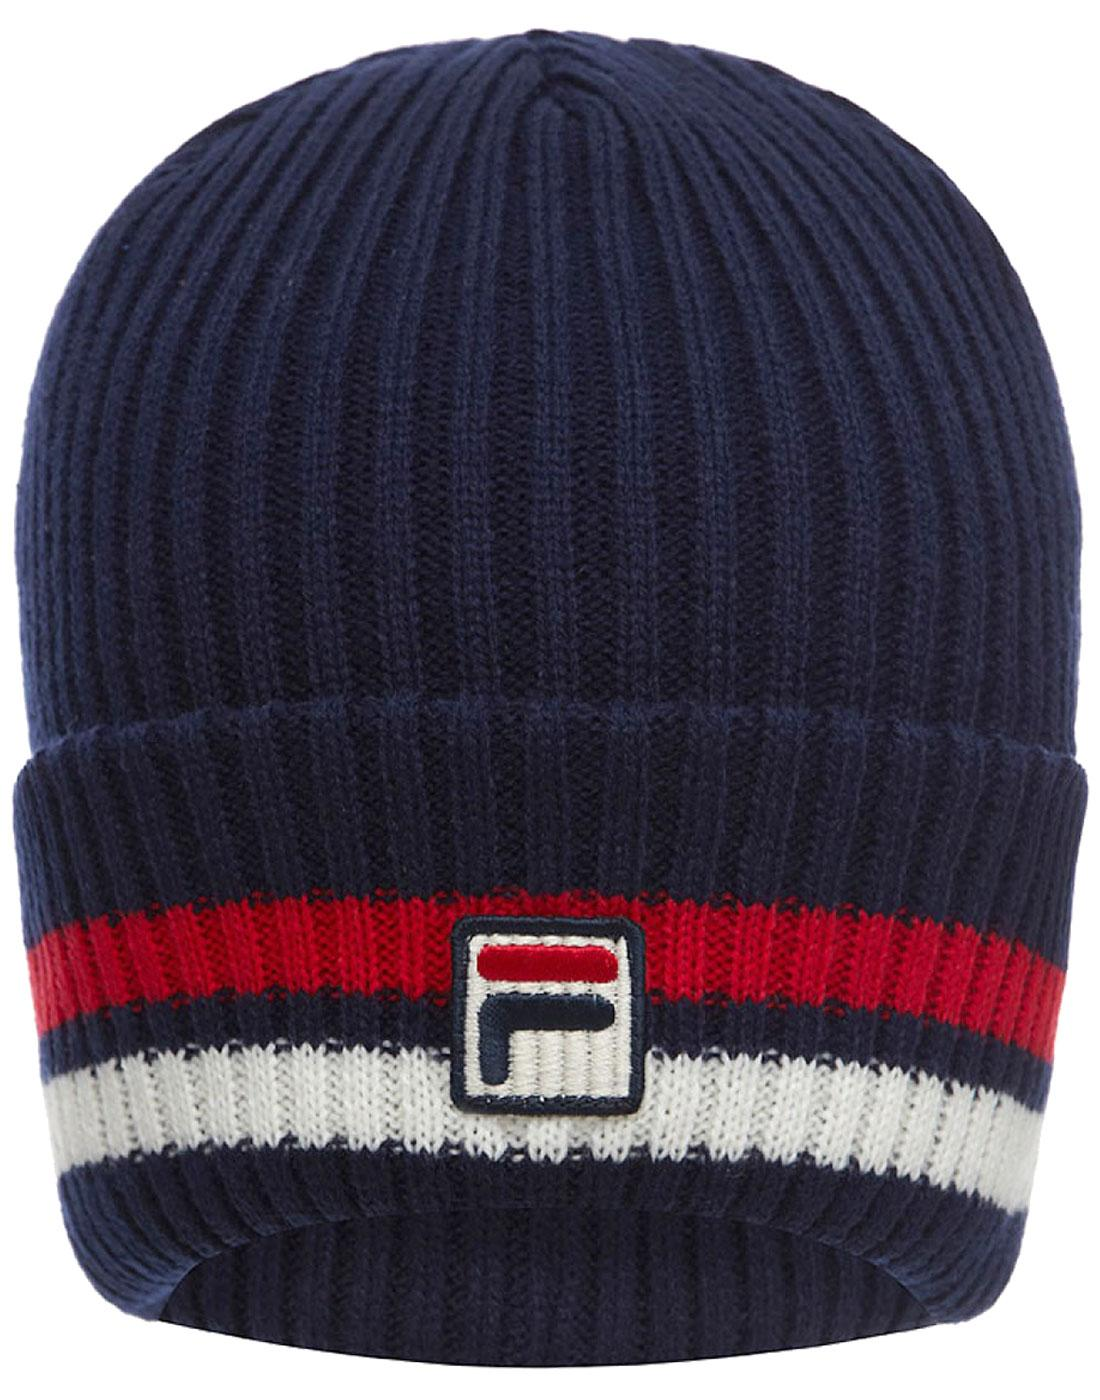 767f7085073 FILA VINTAGE 70s Retro Knitted Snow Time Beanie hat in Peacoat